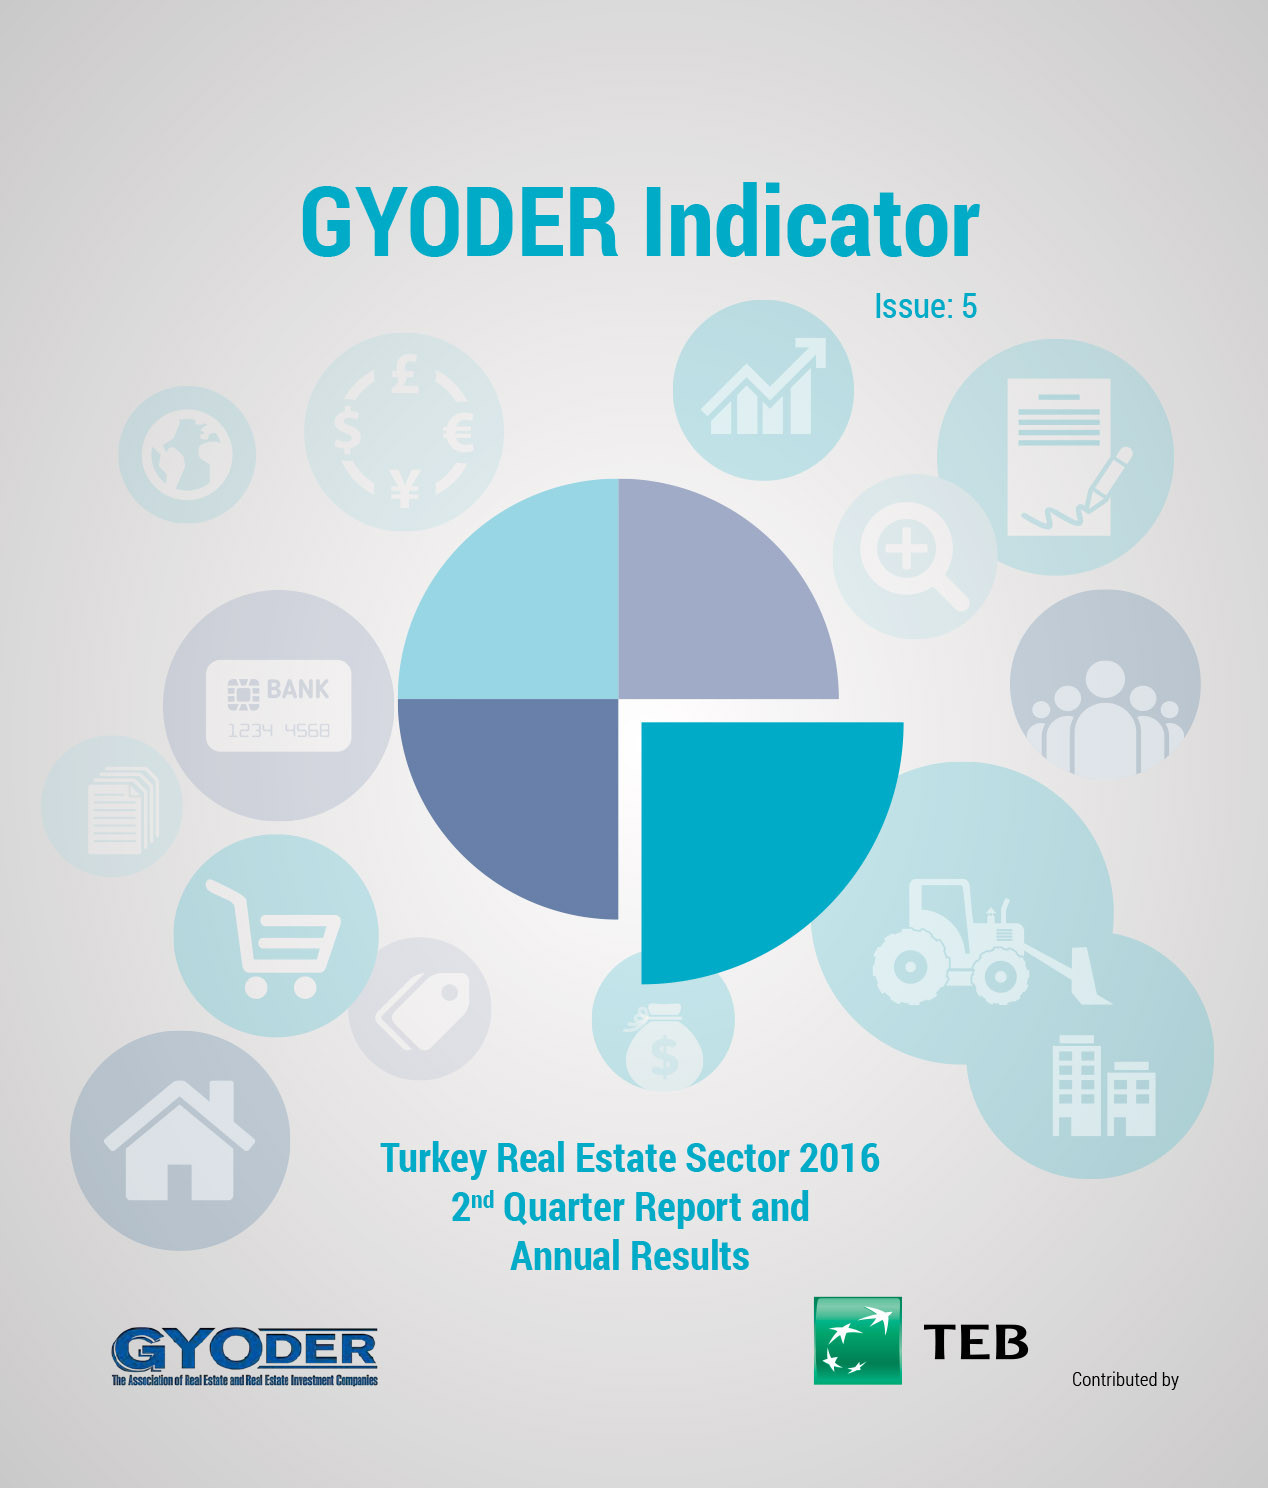 GYODER Indicator, Turkish Real Estate Sector 2016 2nd Quarter Report